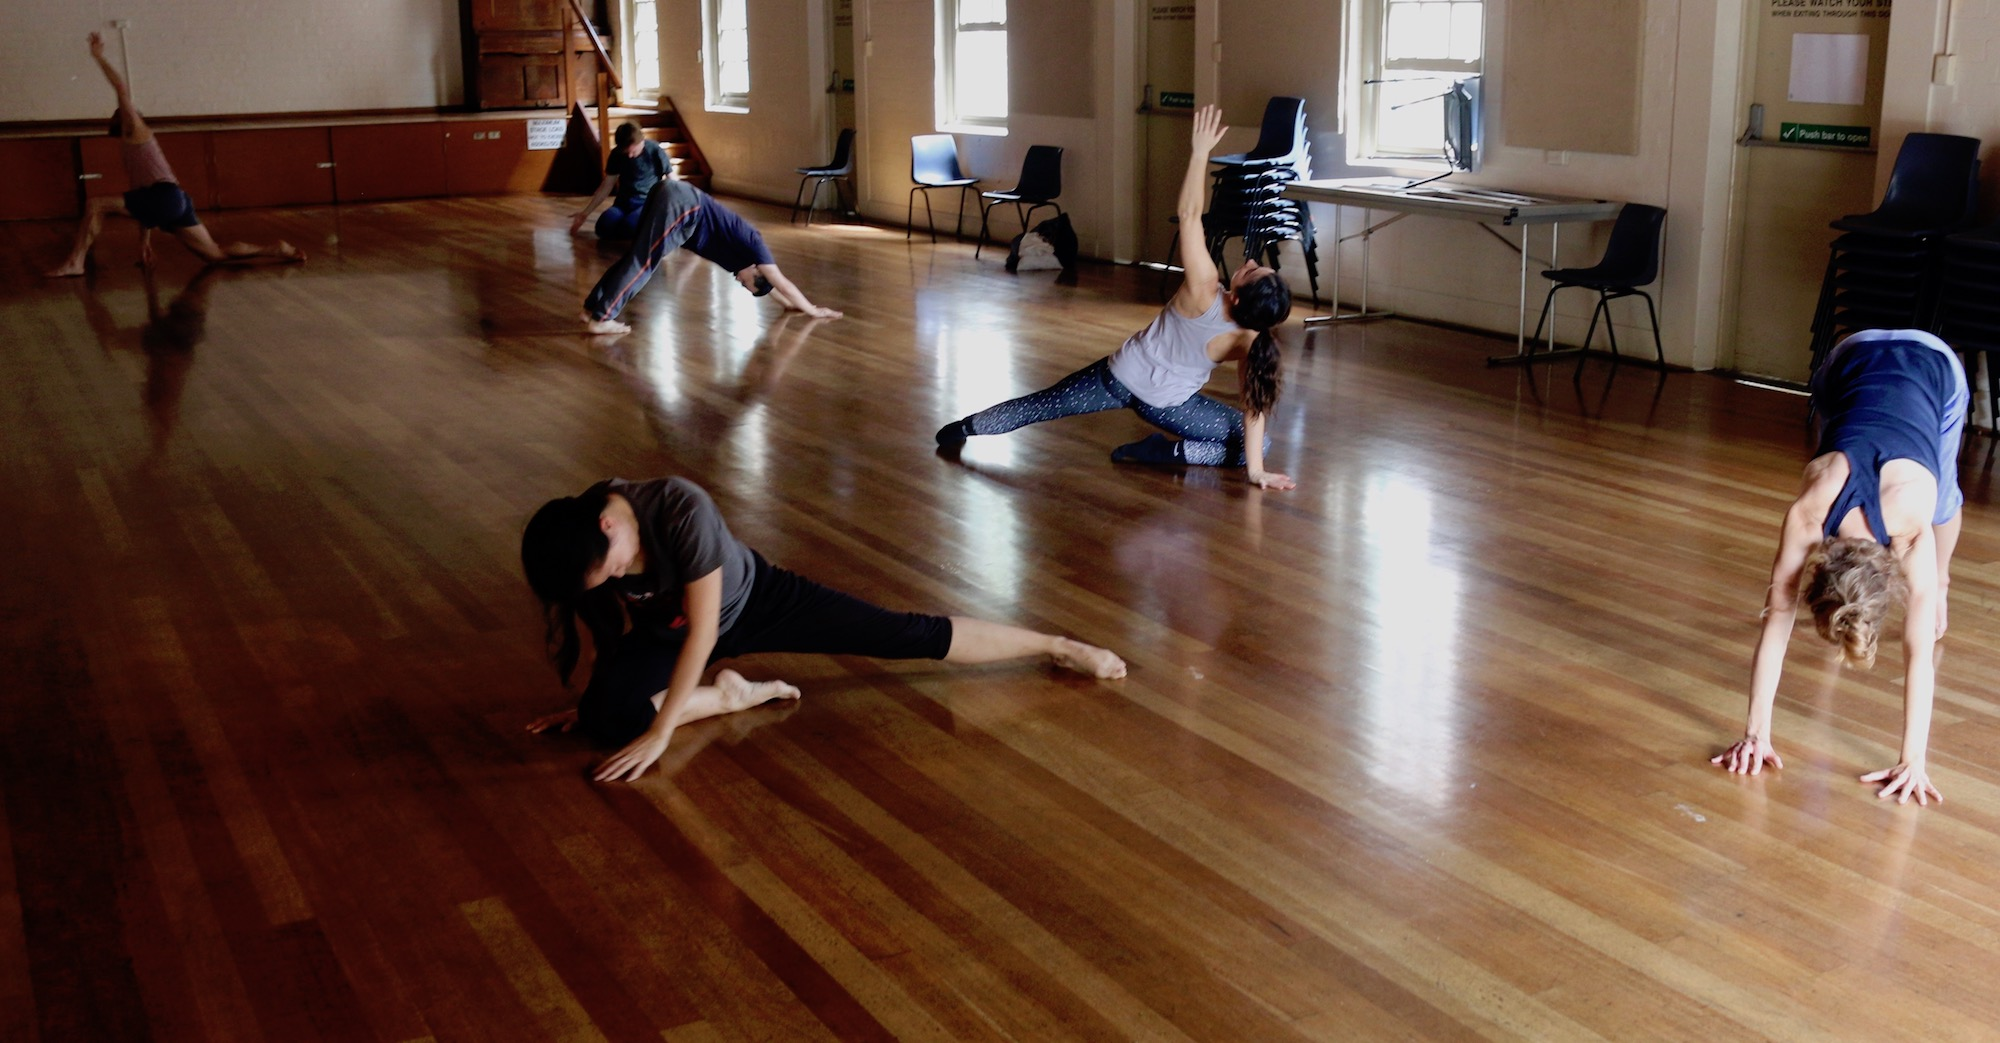 Participants in the first series of movement-stretch classes in 2018